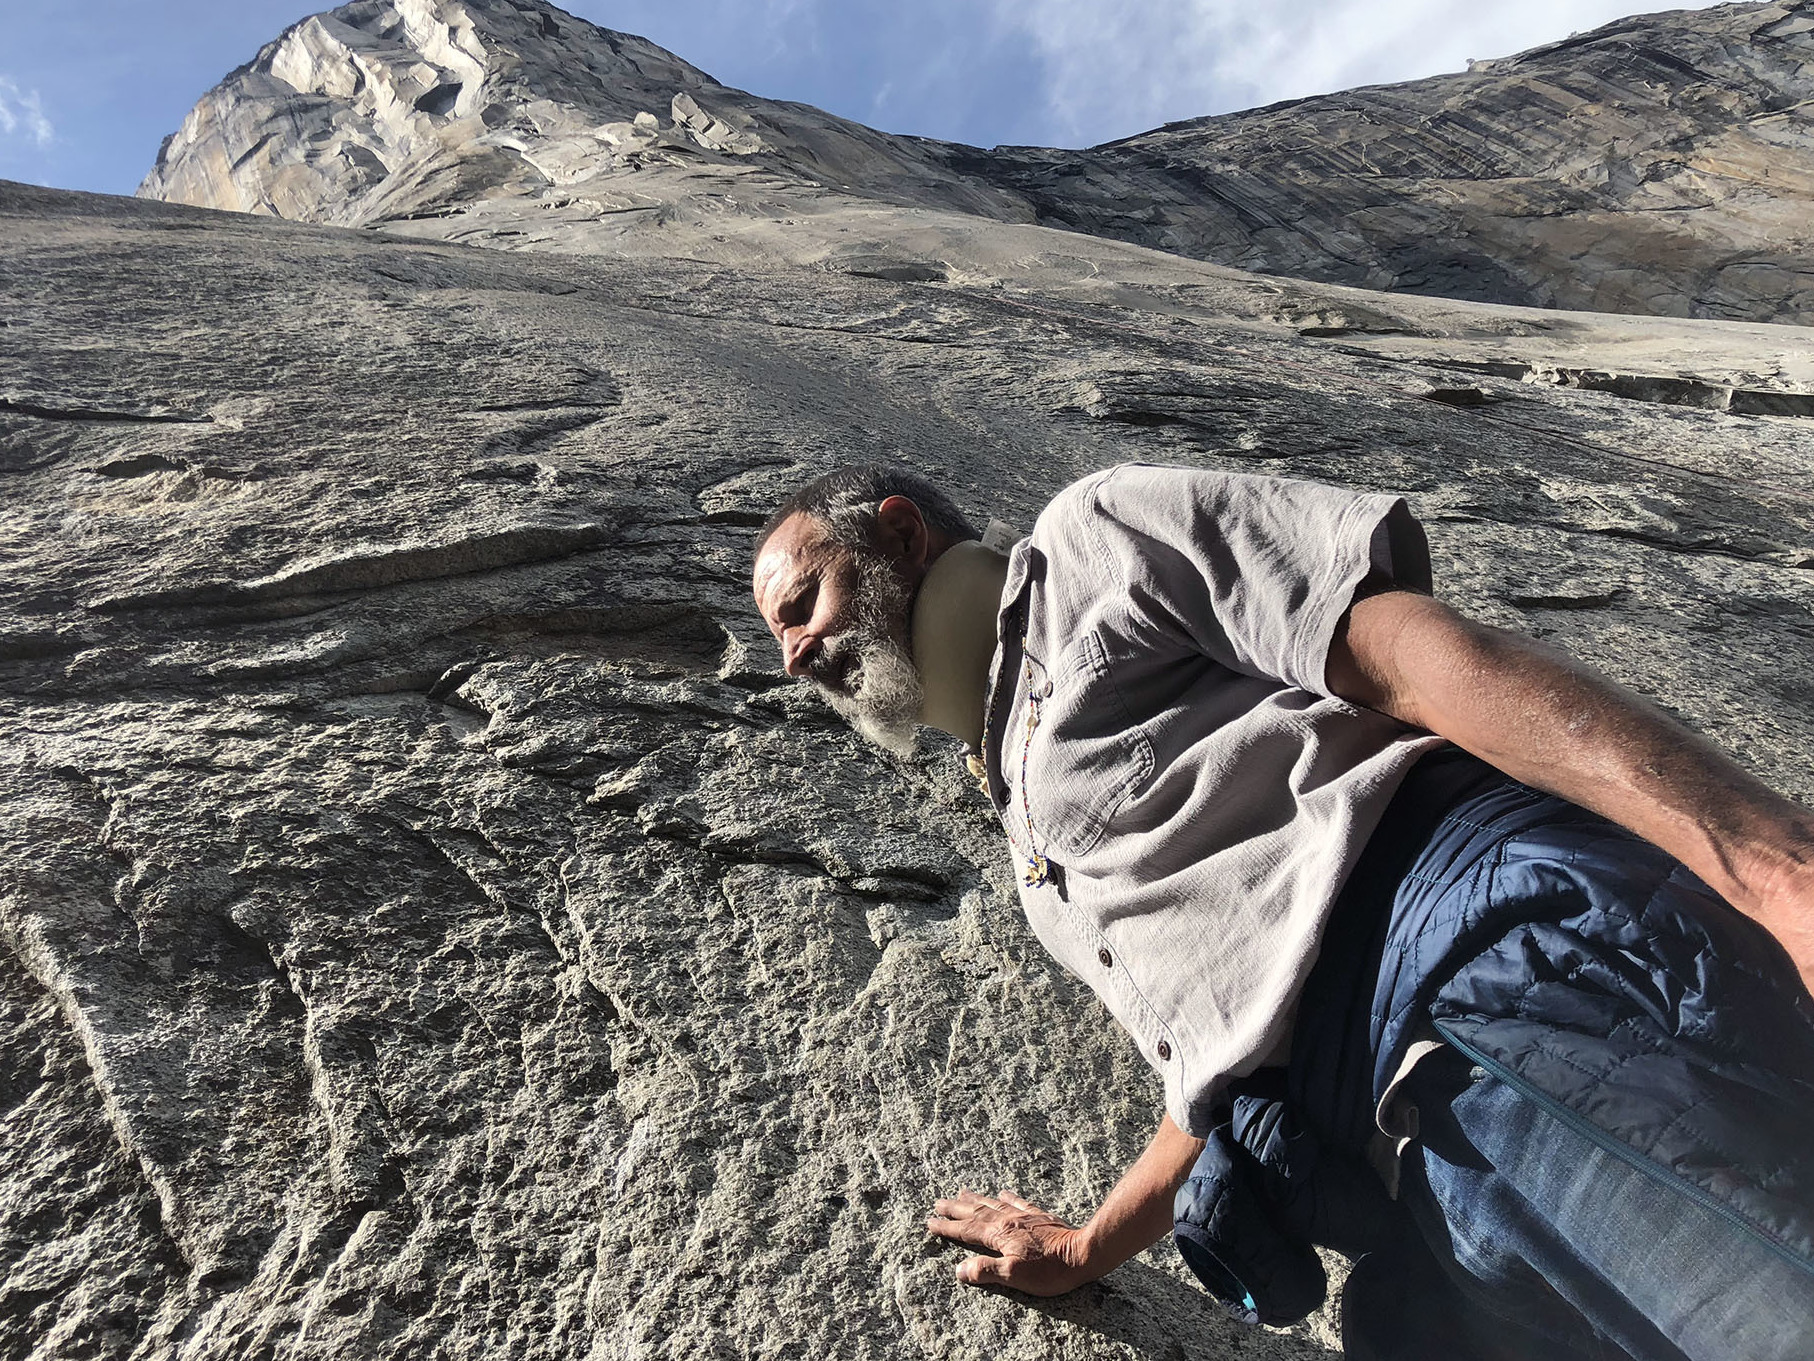 Ken Yager has lived in Yosemite for over 40 years. He fell in love with the park when he touched El Capitan for the first time at 13 years old, and even lived in a cave in the park at one point.